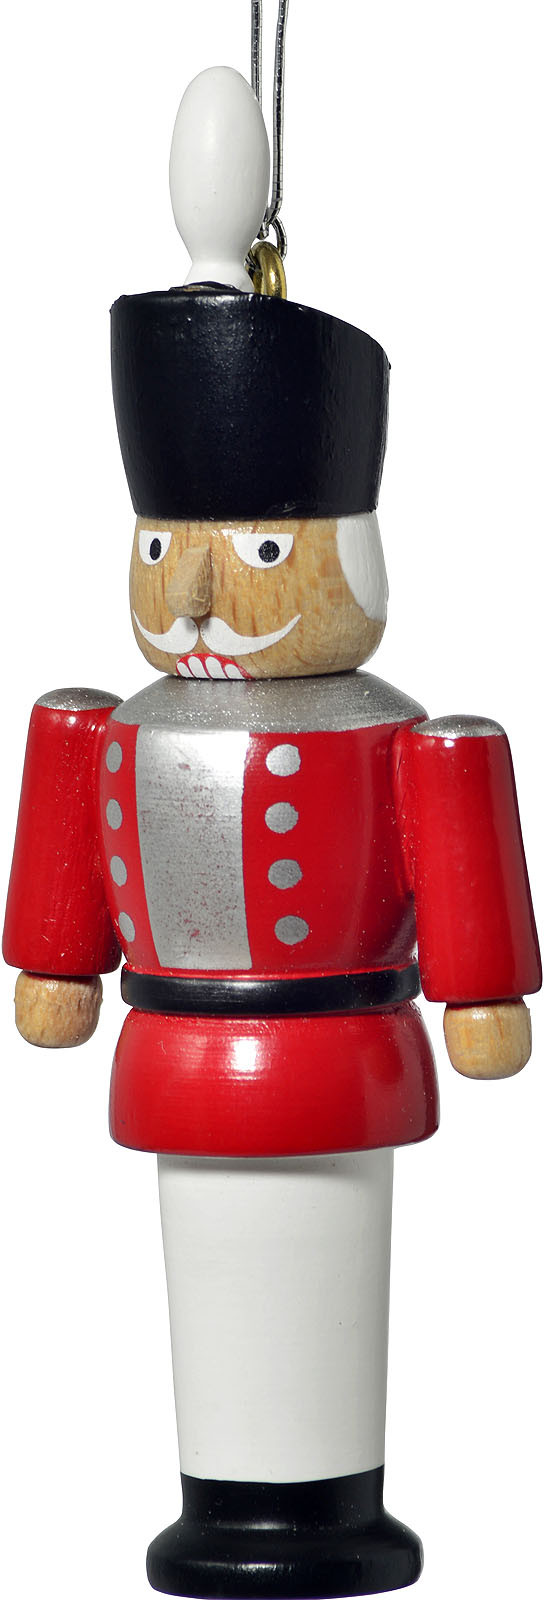 tree ornament, nutcracker, red